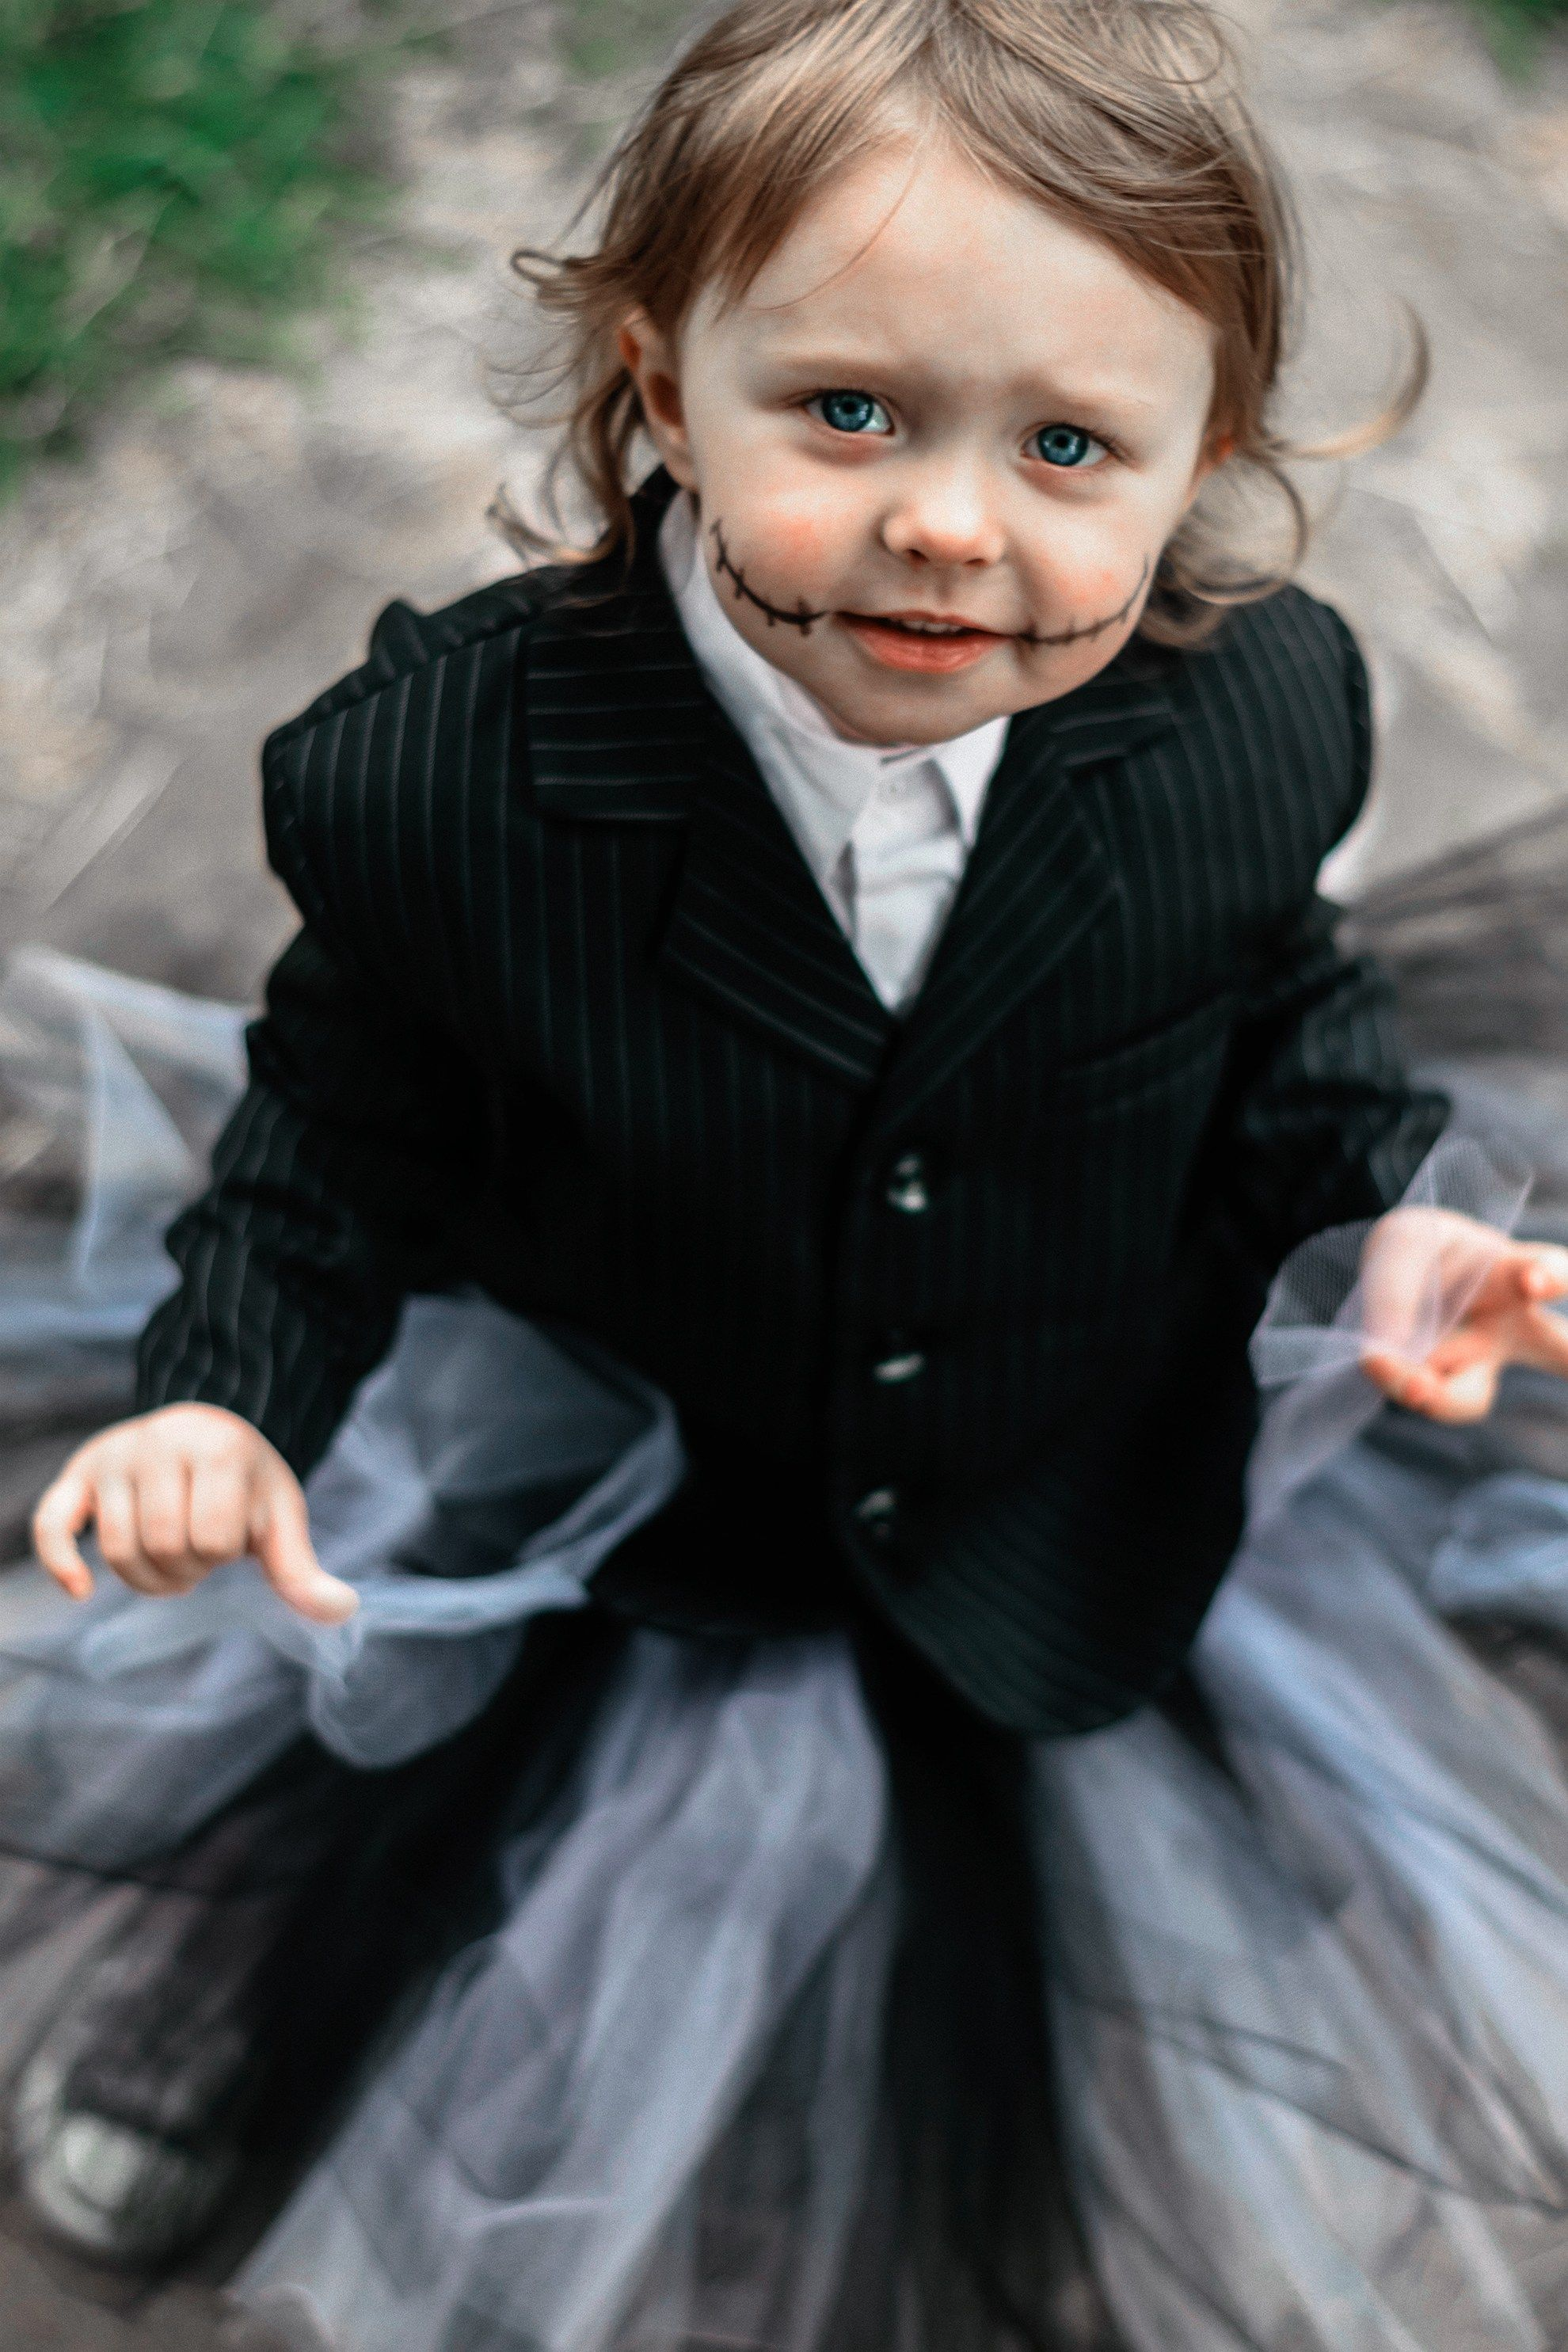 8 Halloween Costume Ideas For Toddlers | #LIFESTYLEBLOGBOARD ...